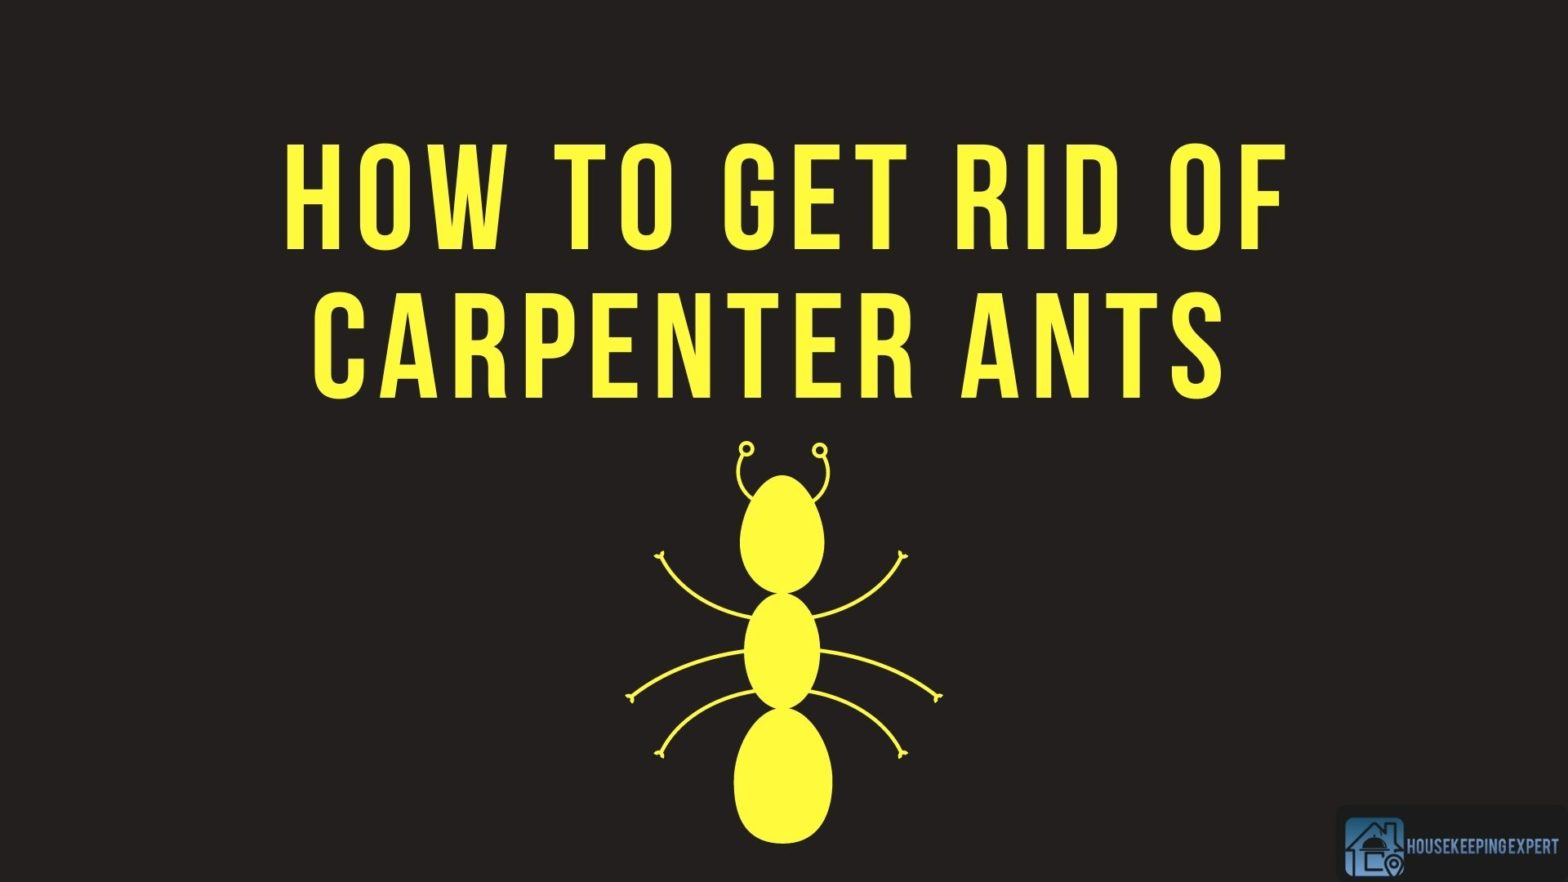 How To Get Rid Of Carpenter Ants